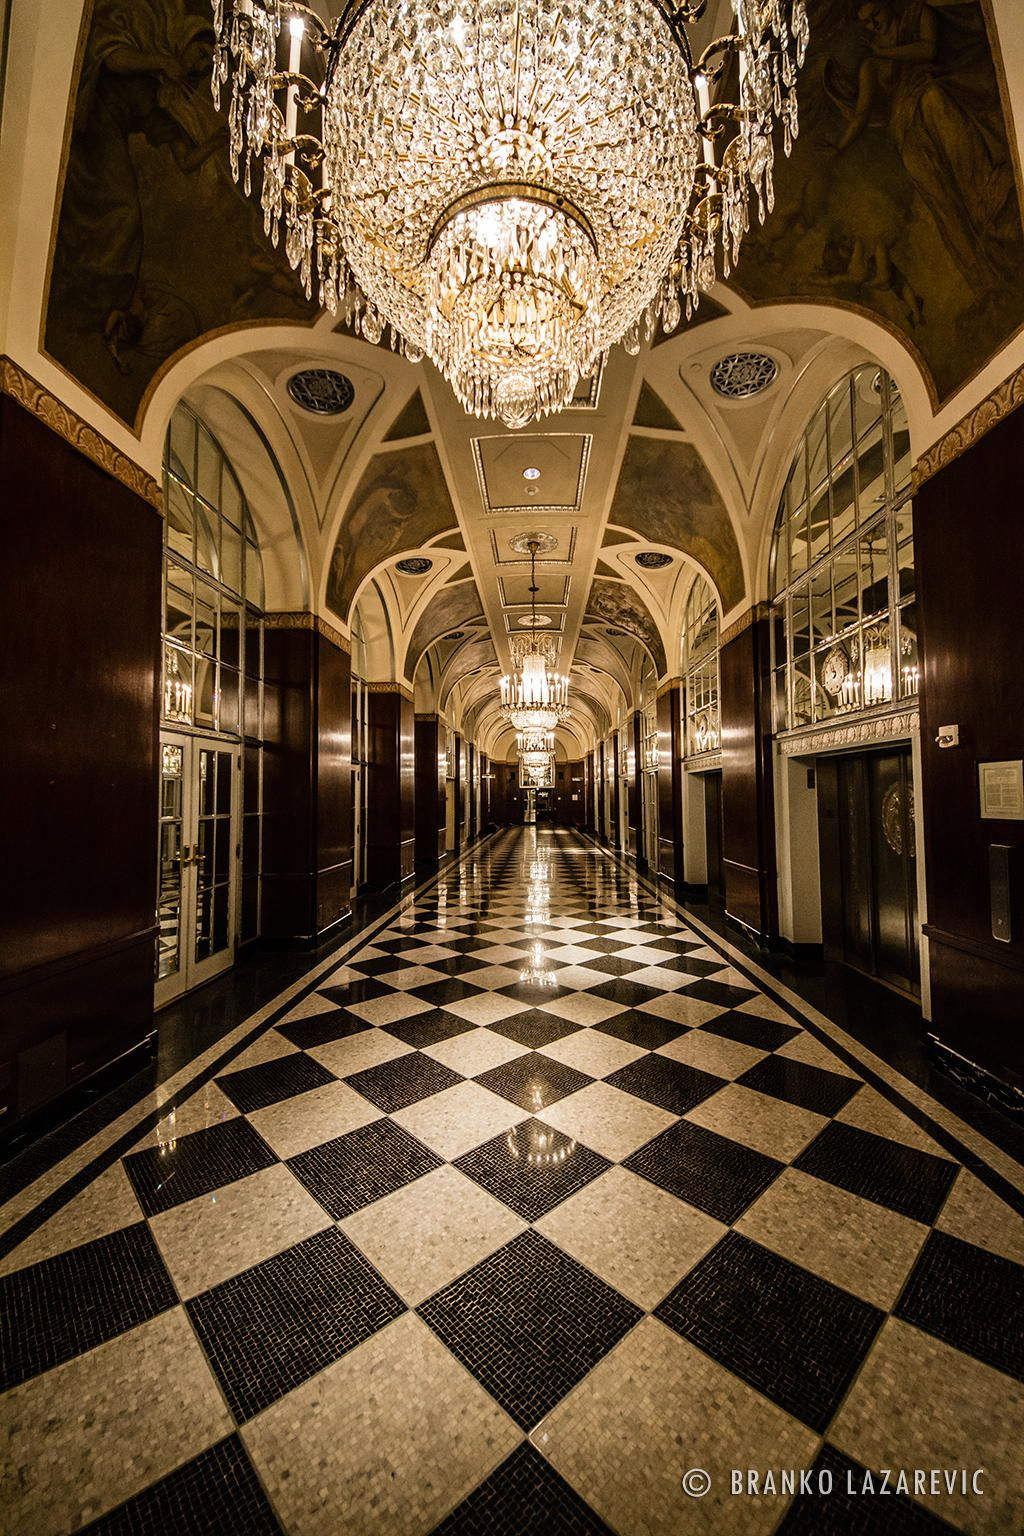 Marble Hallway By Branko Lazarevic On 500px